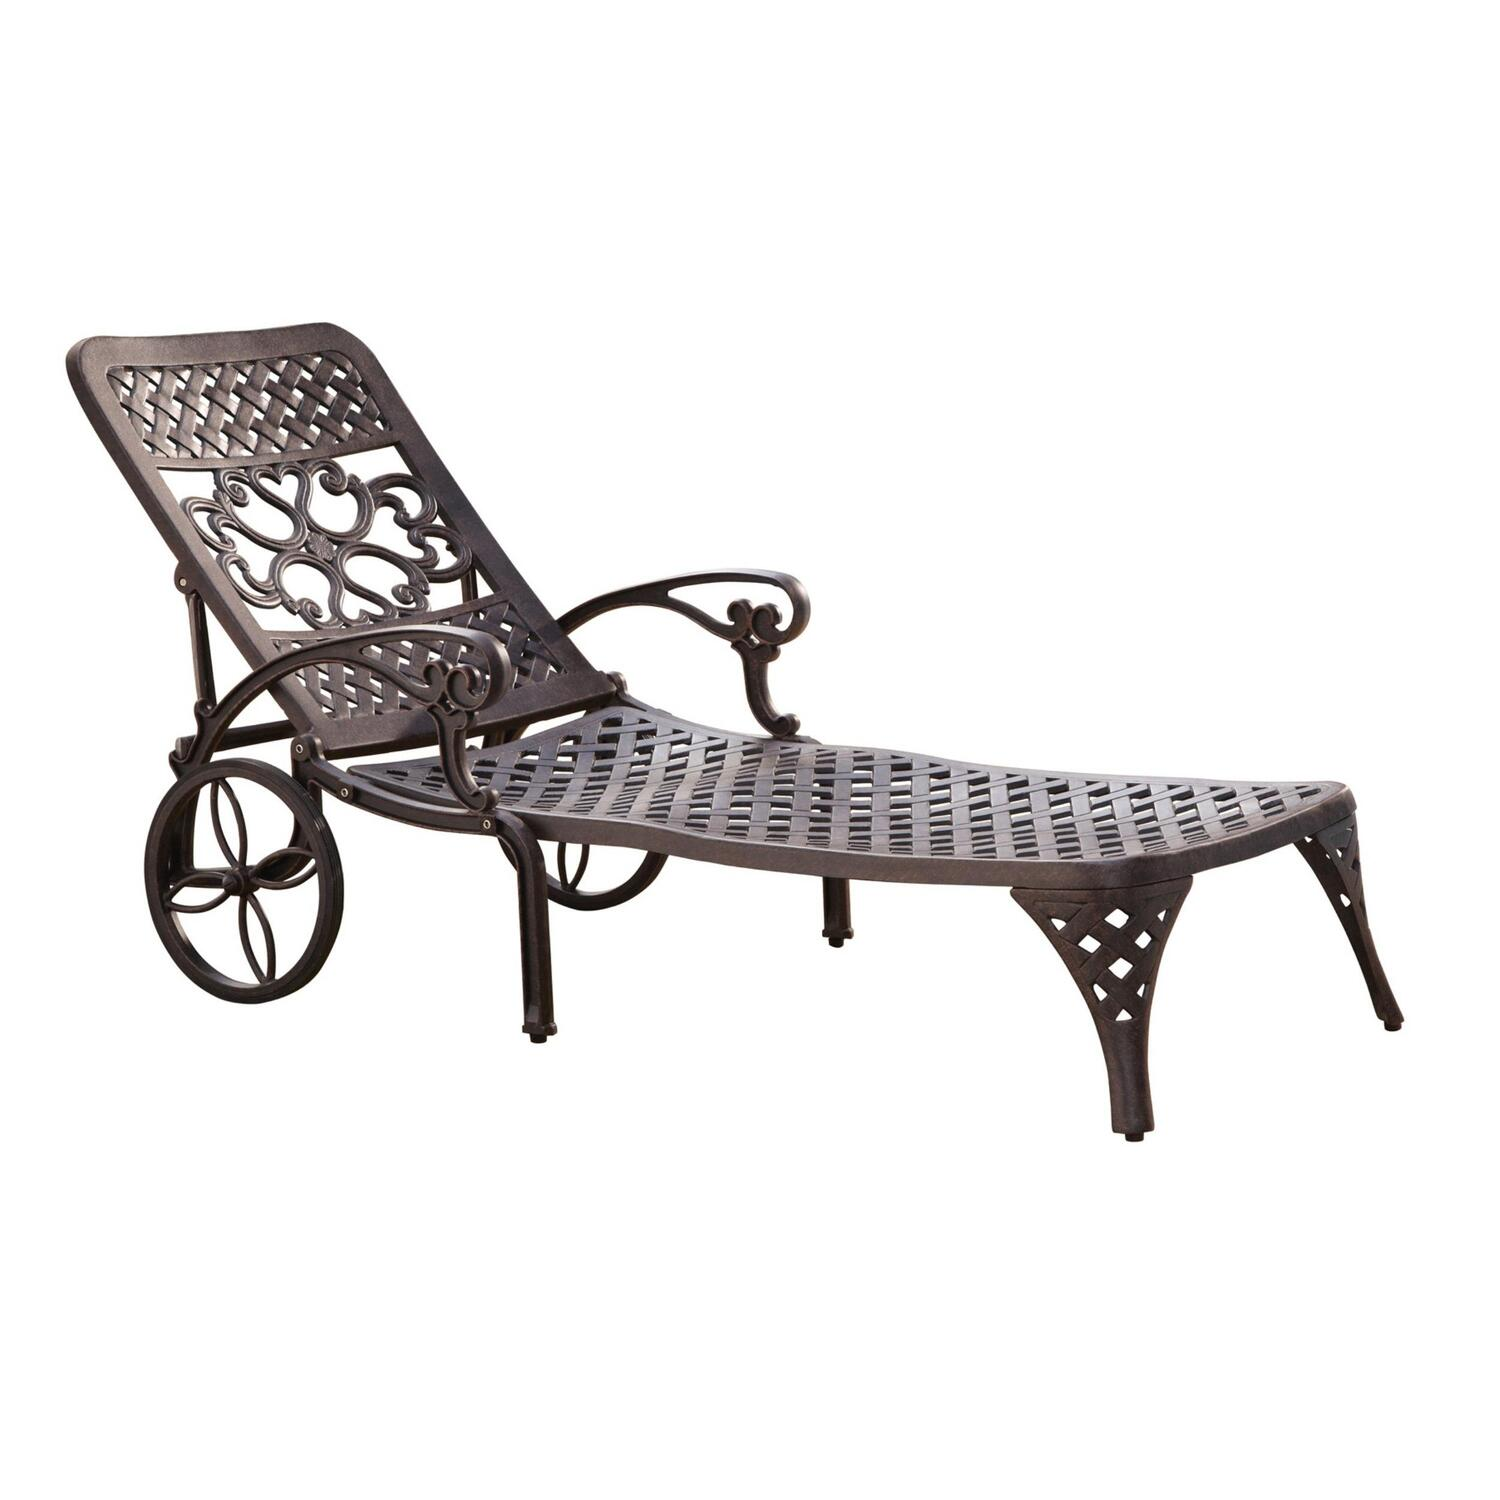 Home Styles Biscayne Chaise Lounge Chair by OJ merce $331 02 $372 20